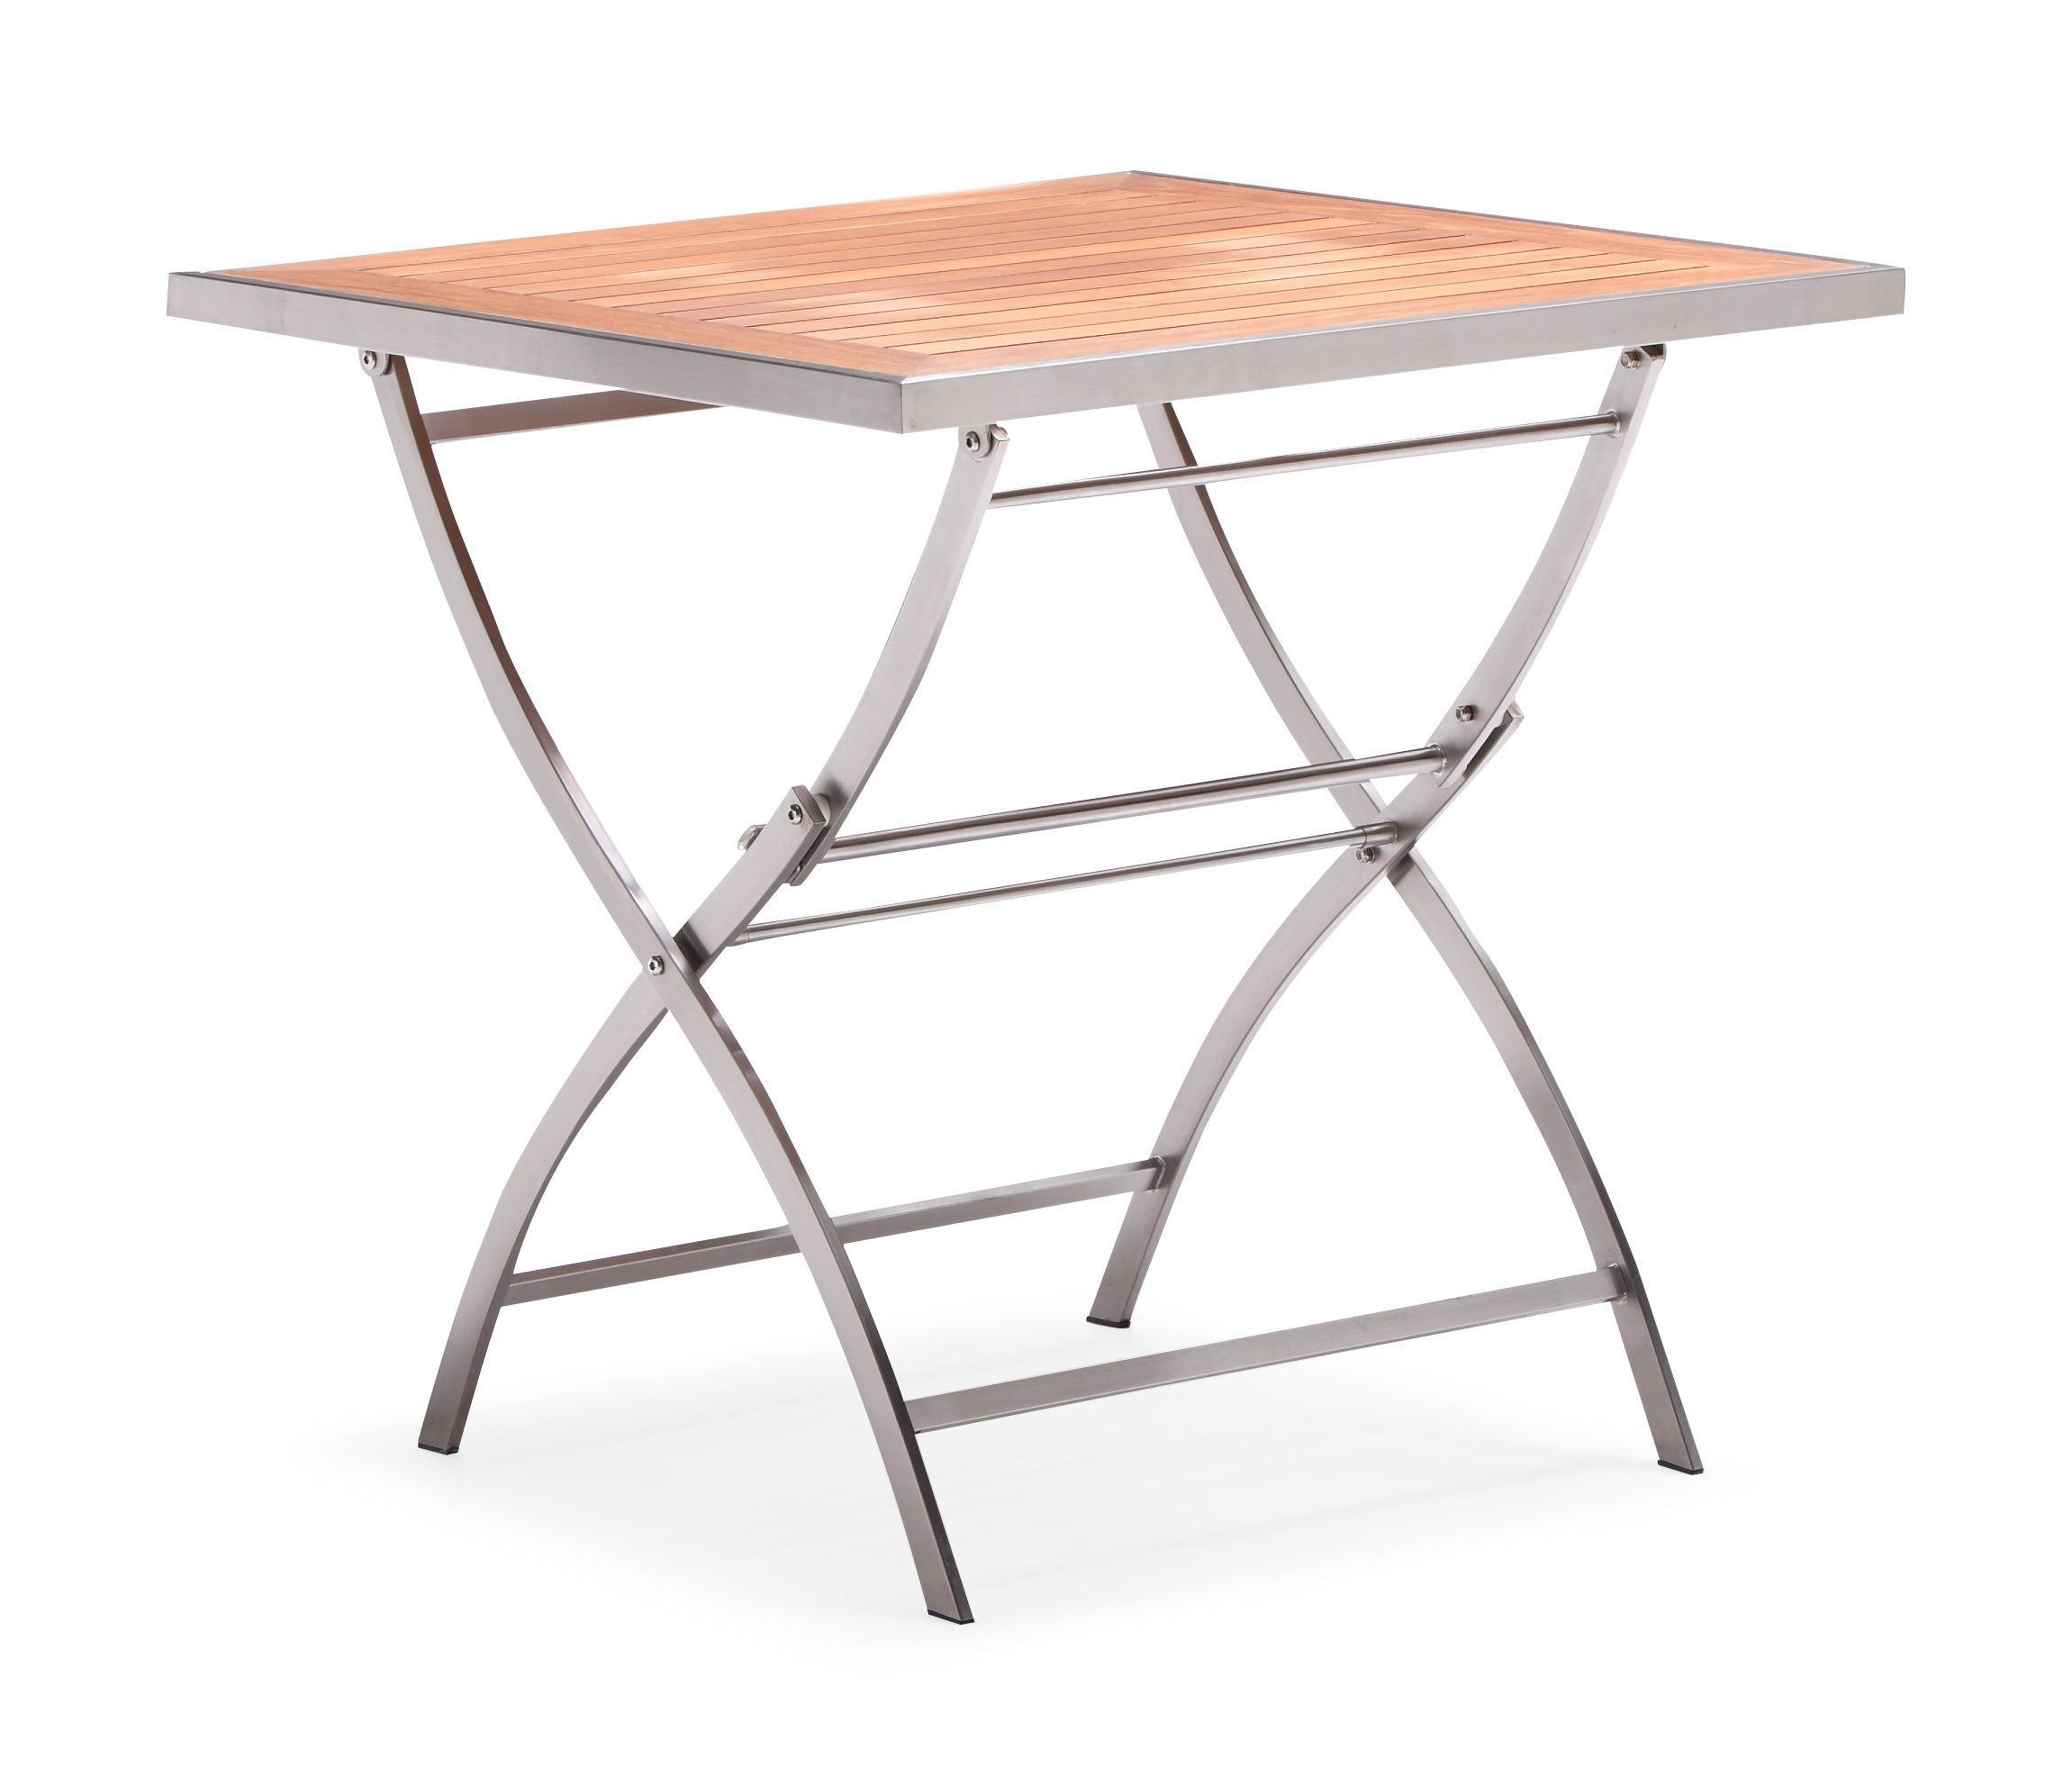 Patio folding table stainless steel teak garden table (T062M)